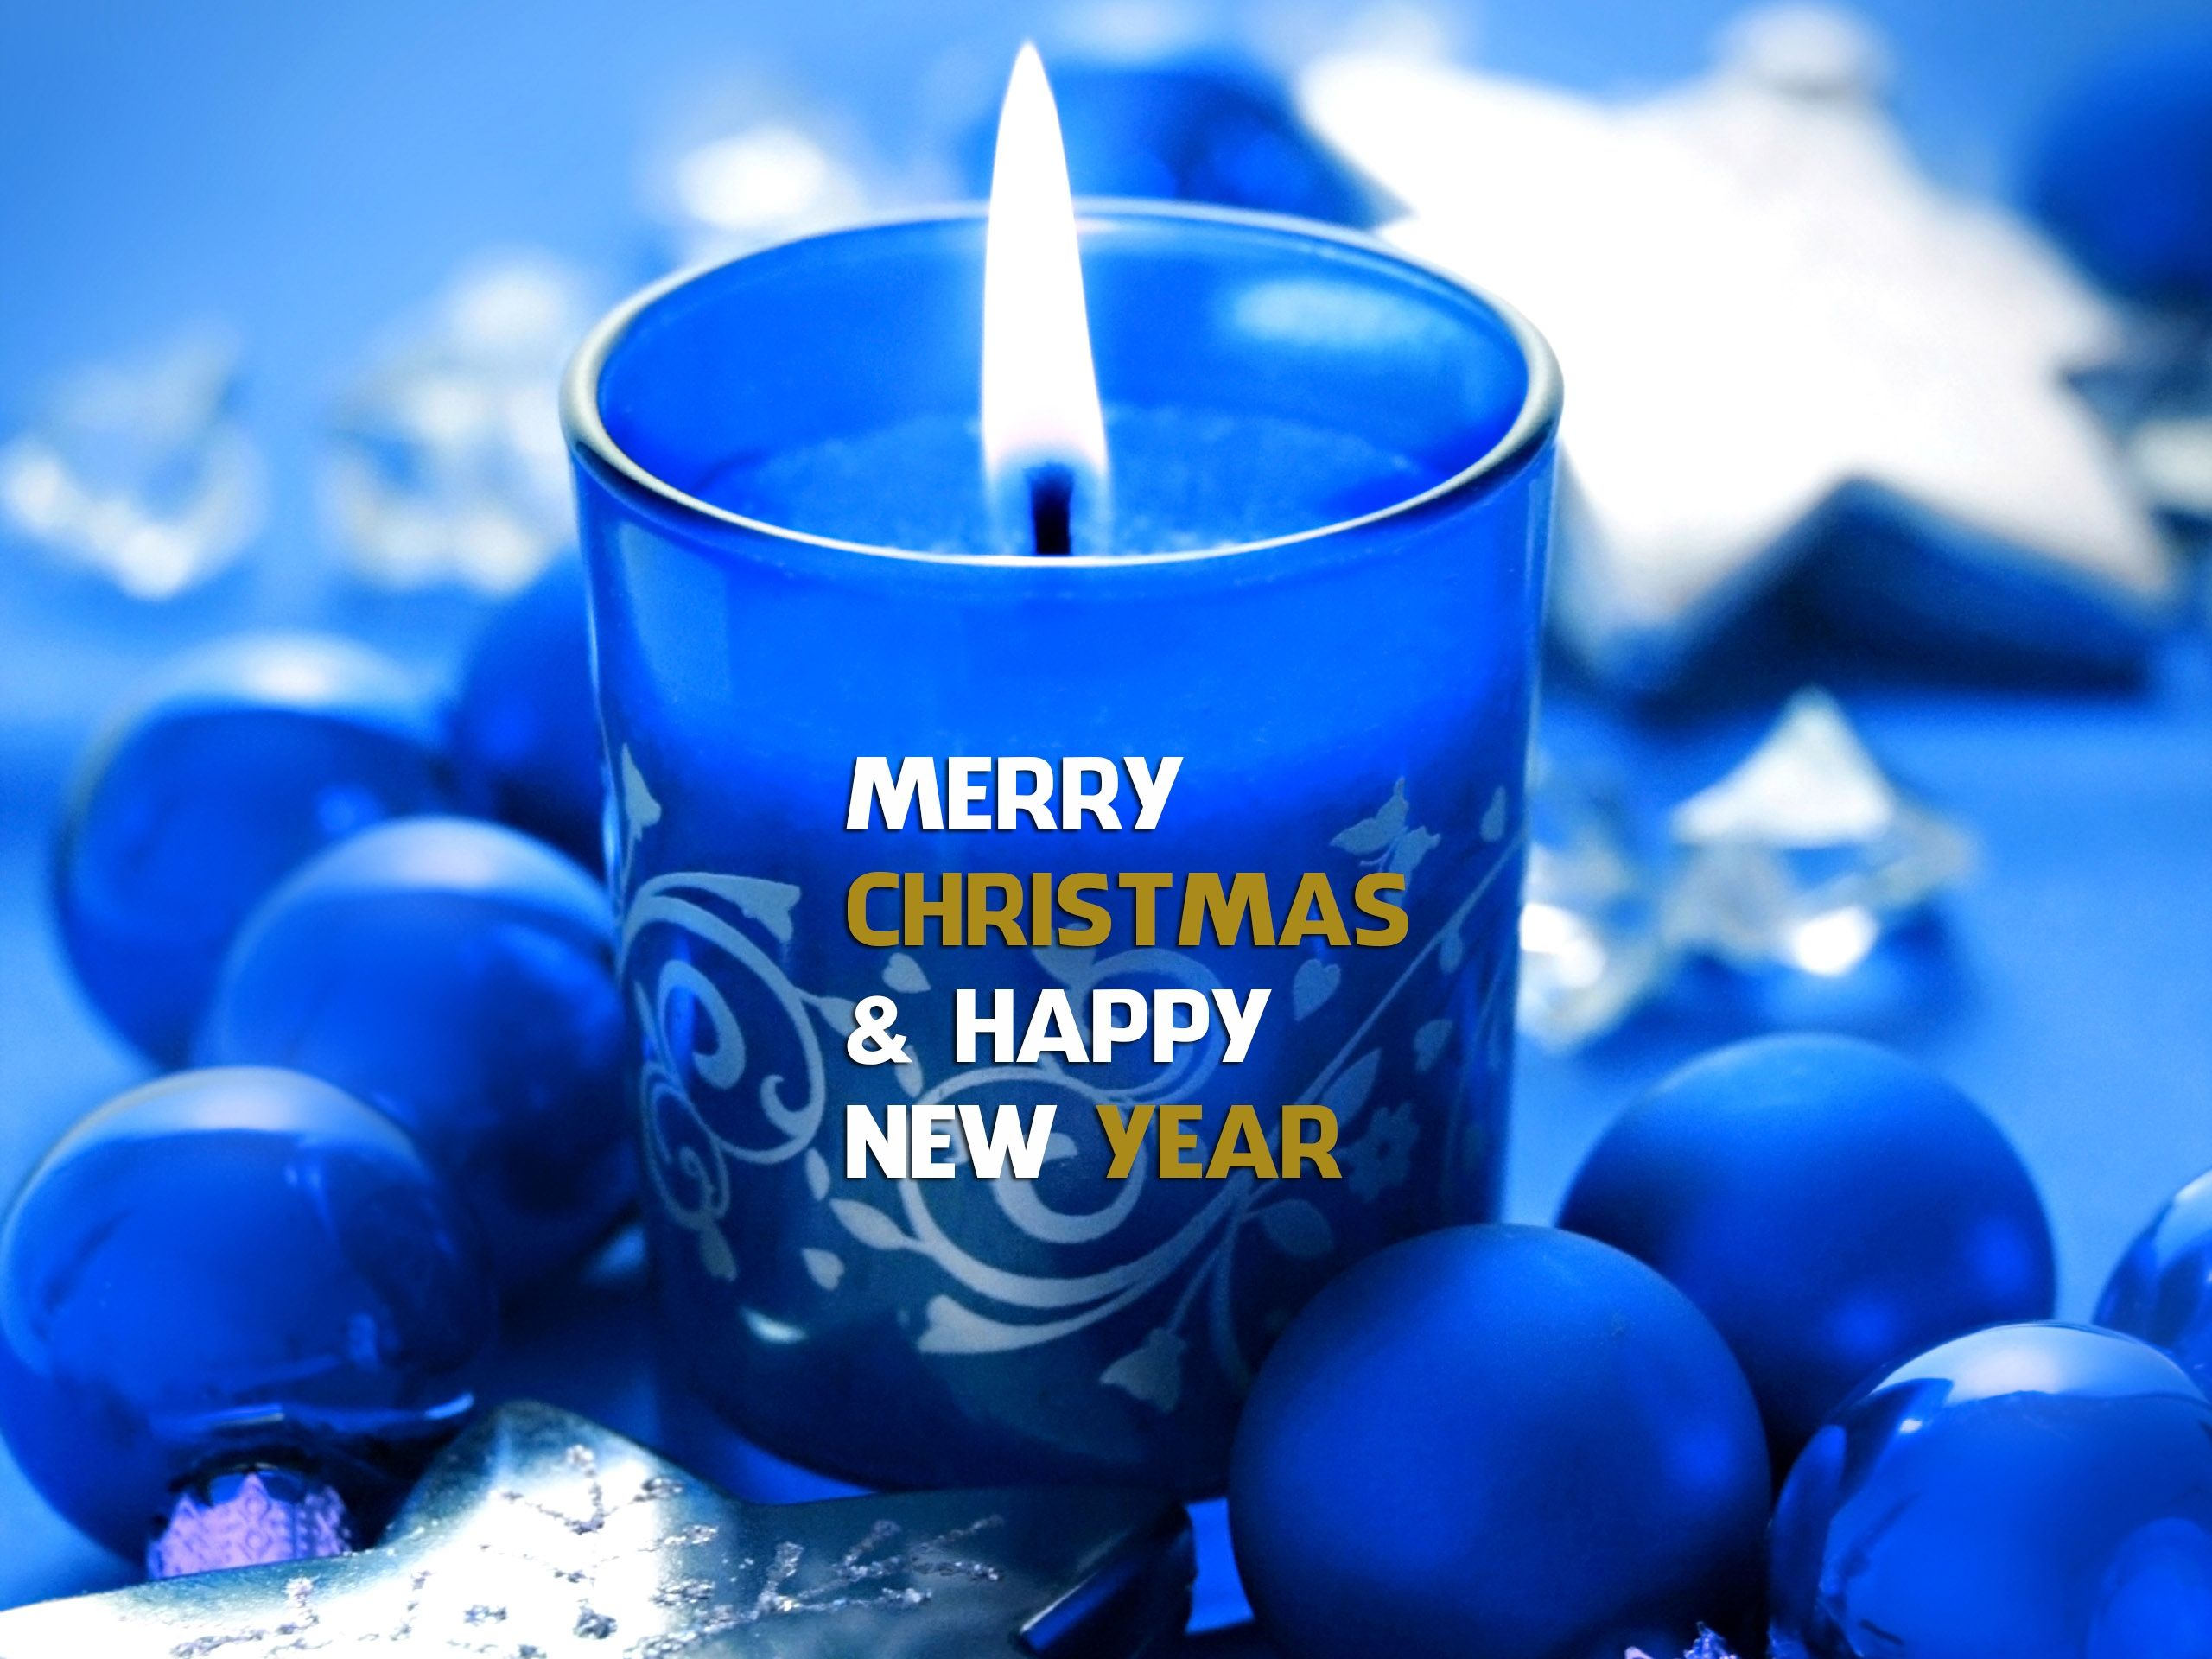 Merry Christmas And Happy New Year Wallpapers 4